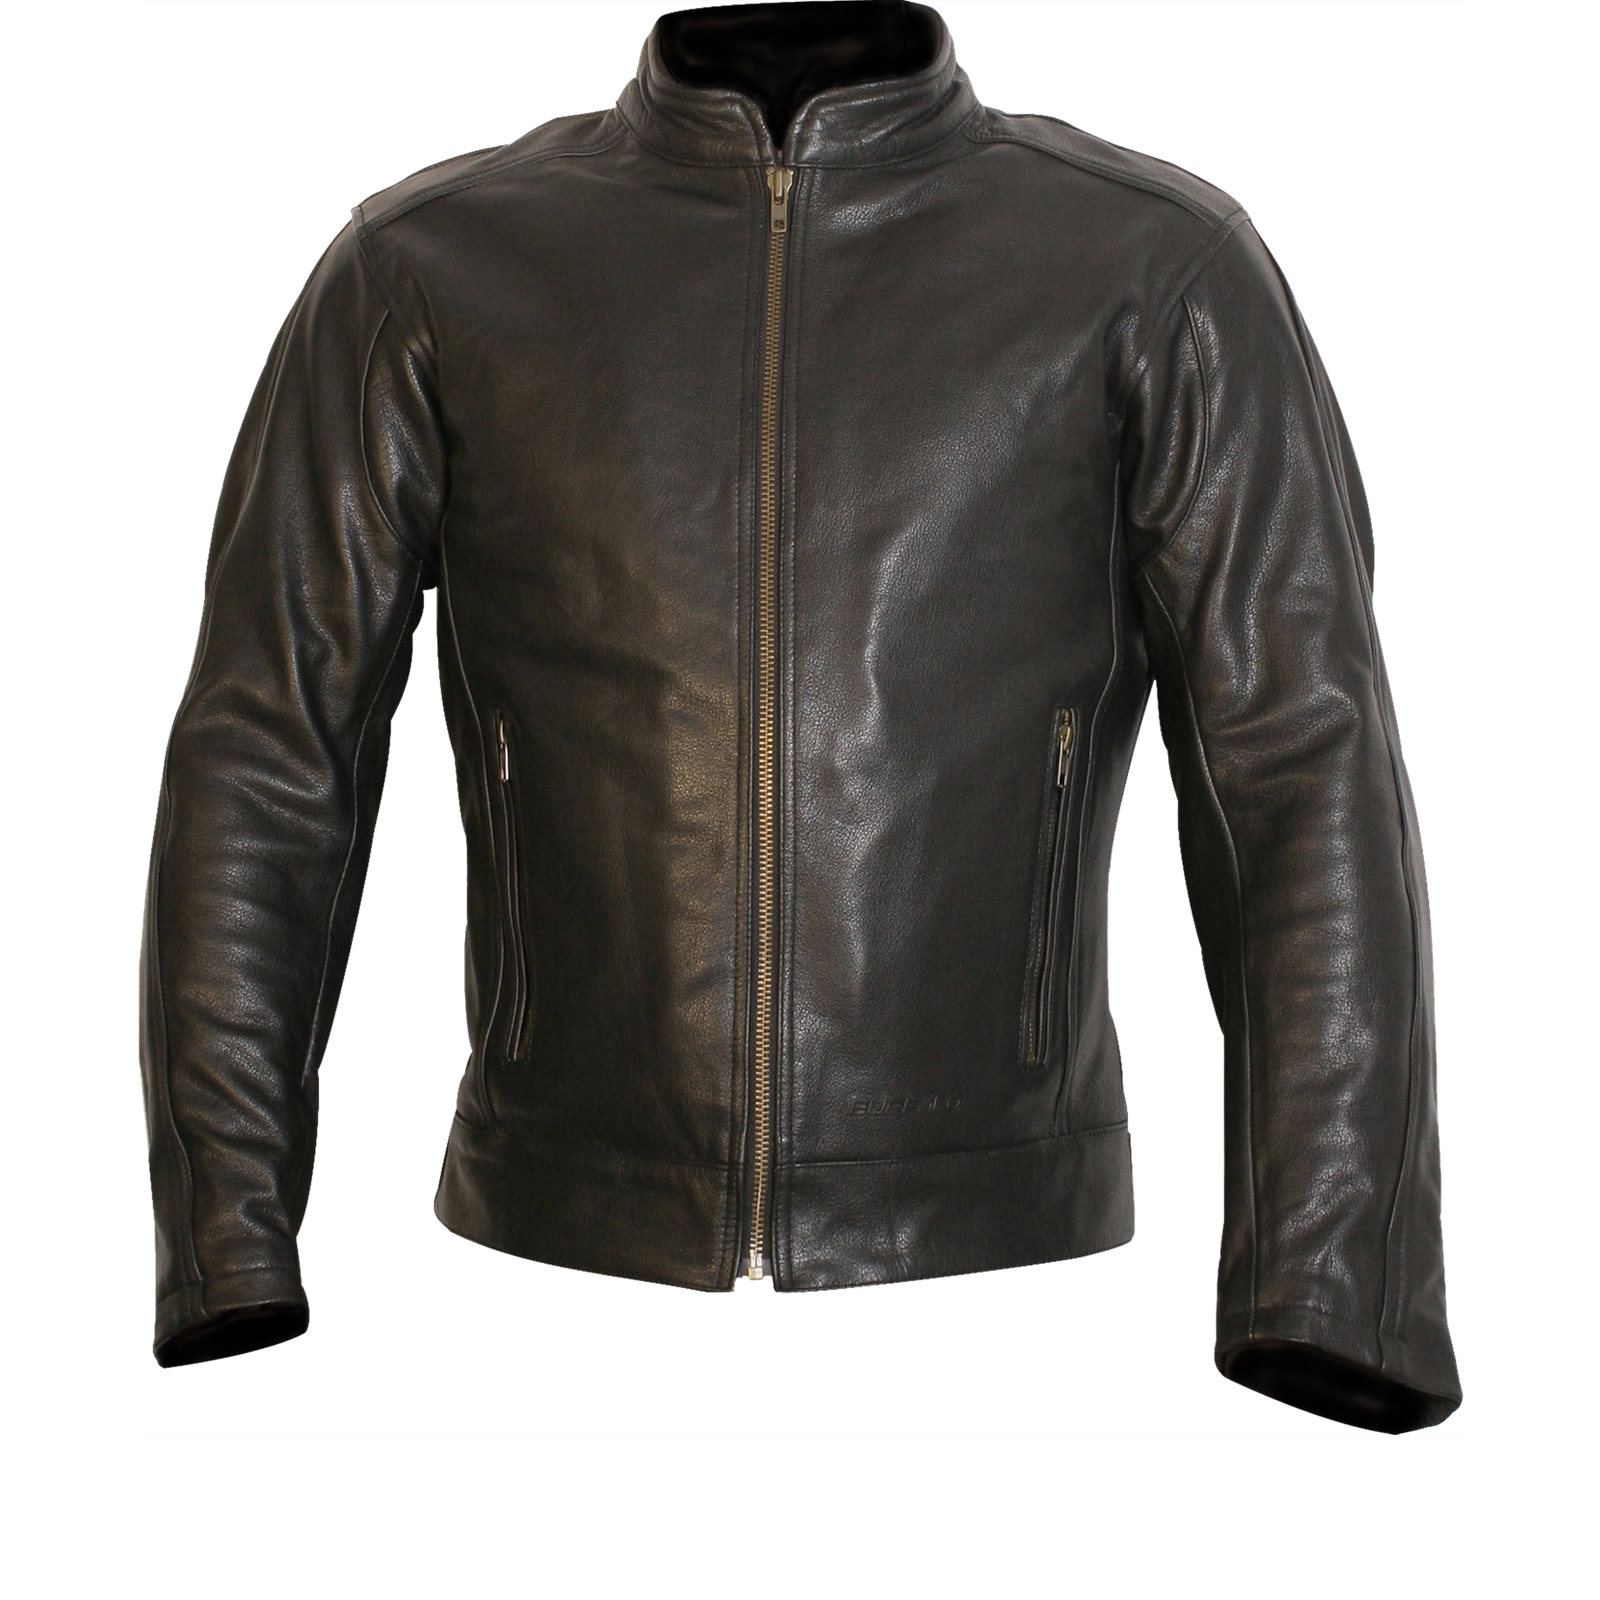 Best Motorcycle Jacket >> Buffalo Navigator Leather Motorcycle Jacket - Jackets - Ghostbikes.com